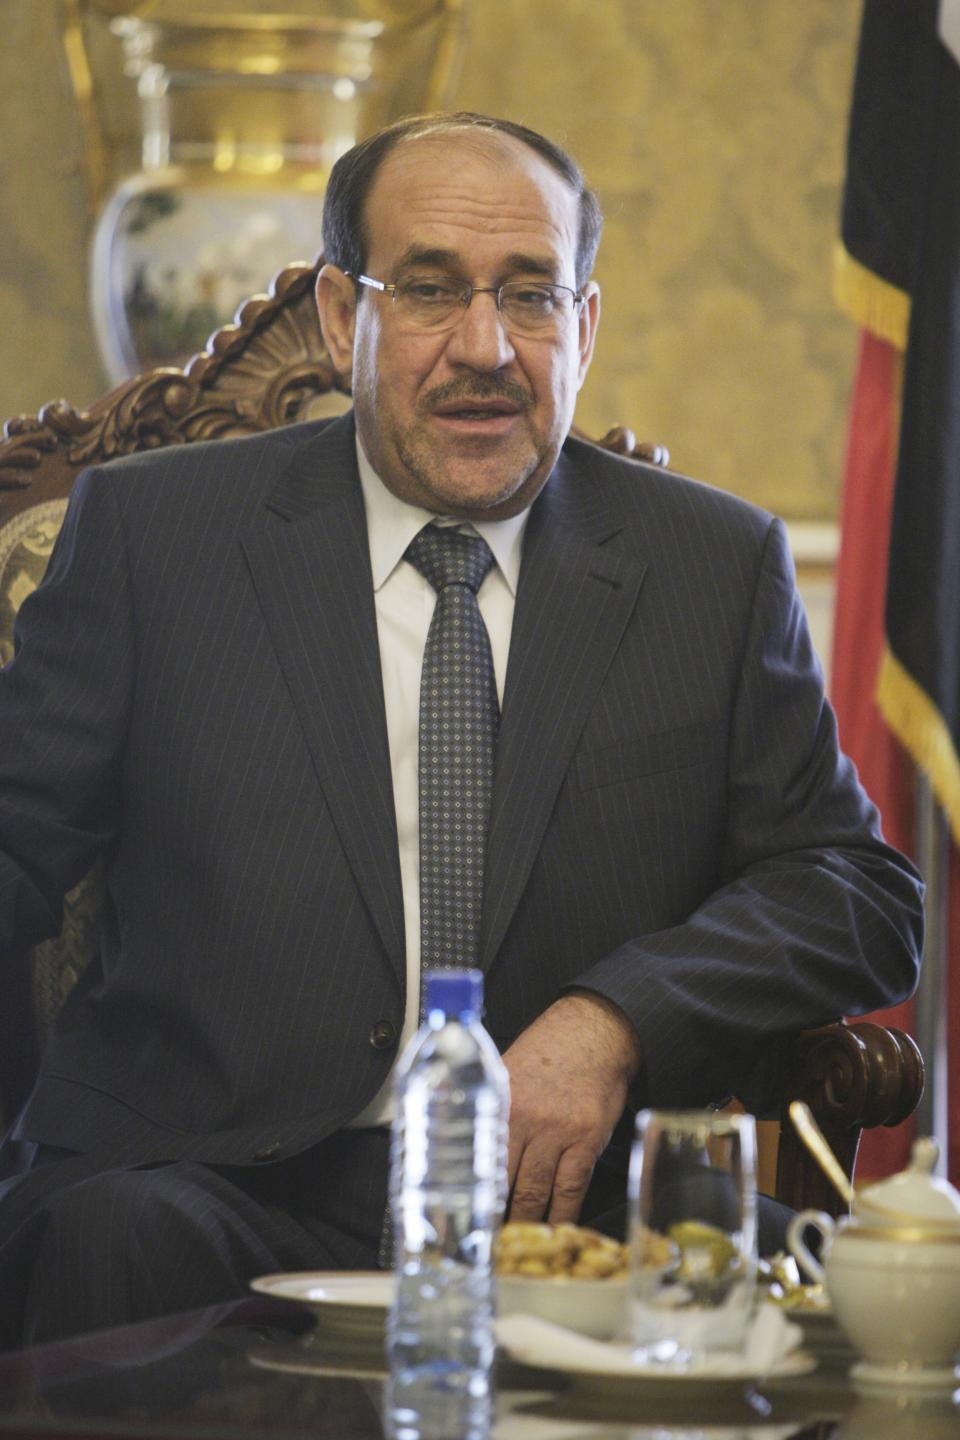 Iraqi Prime Minister Nouri al-Maliki talks with Iranian Vice-President Mohammad Reza Rahimi, unseen, after his official arrival ceremony in Tehran, Iran, Sunday, April 22, 2012. (AP Photo/Vahid Salemi)